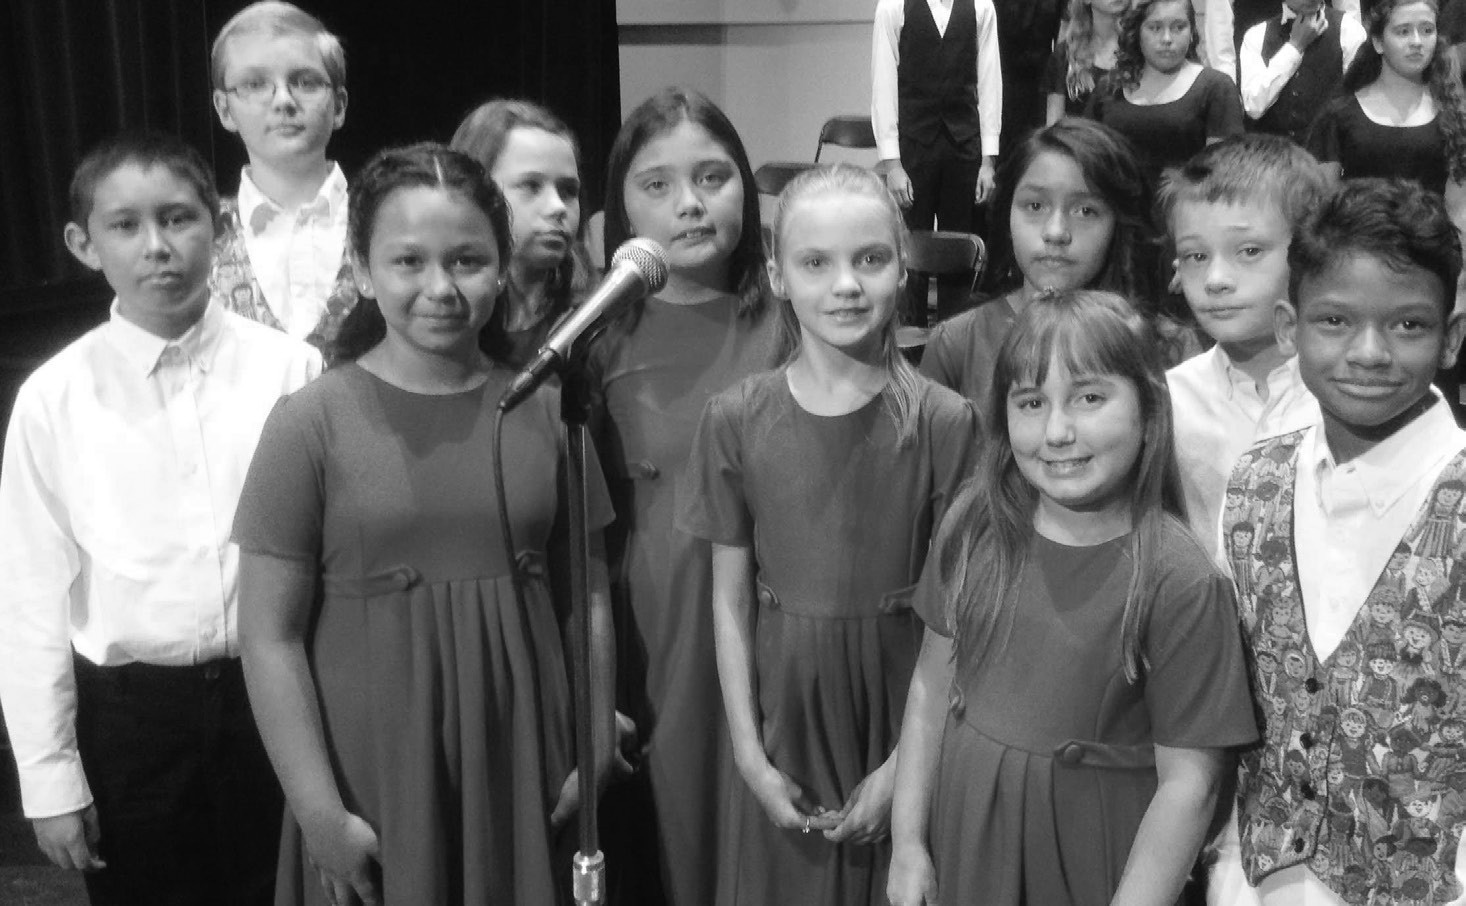 The Center Children's and Youth Chorus is part of the Escondido Choral Arts Program endorsed by the CCAE.